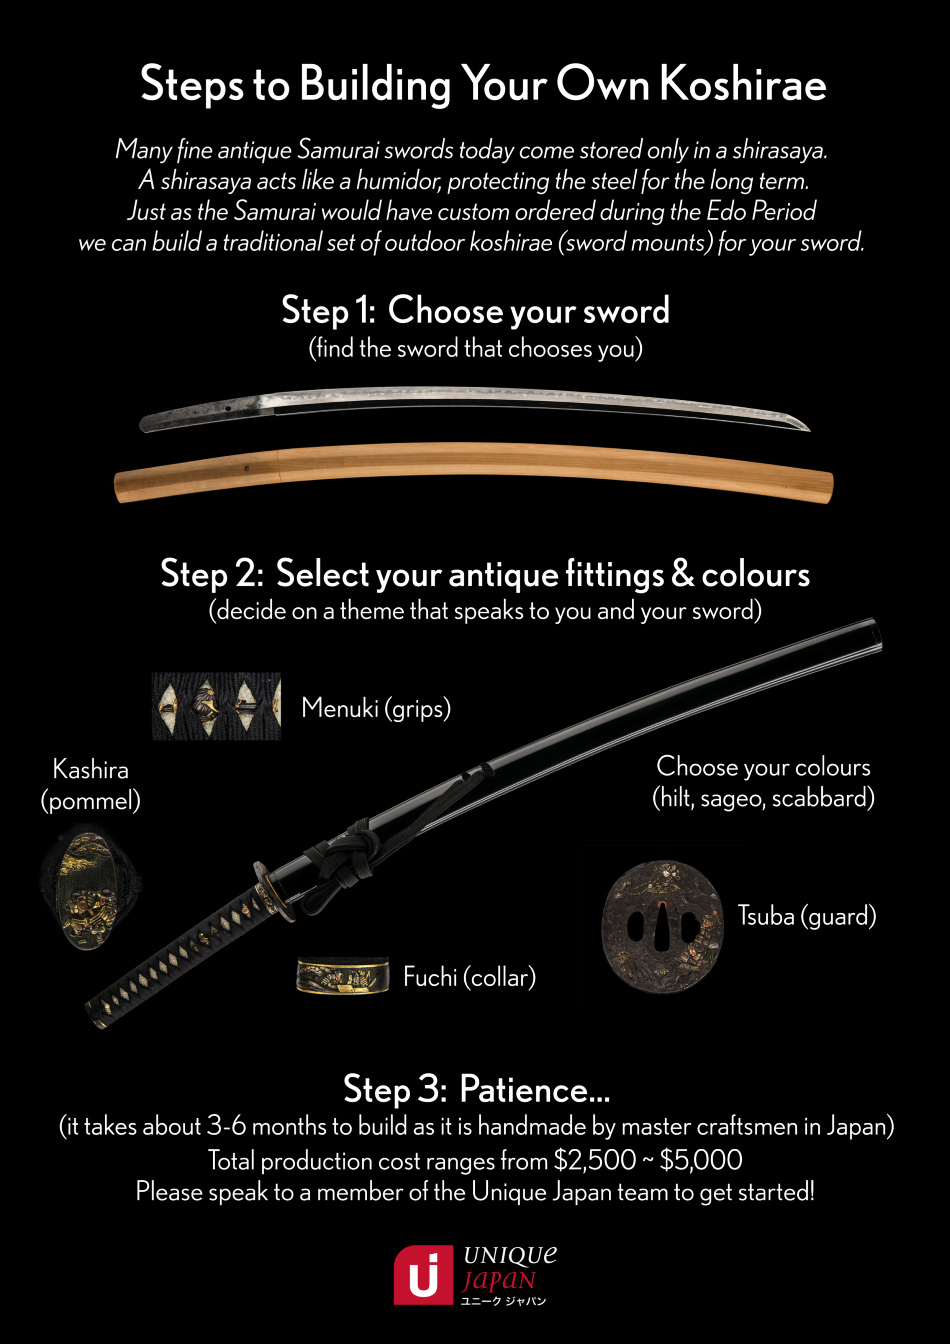 Steps to Building Your Own Koshirae - Unique Japan